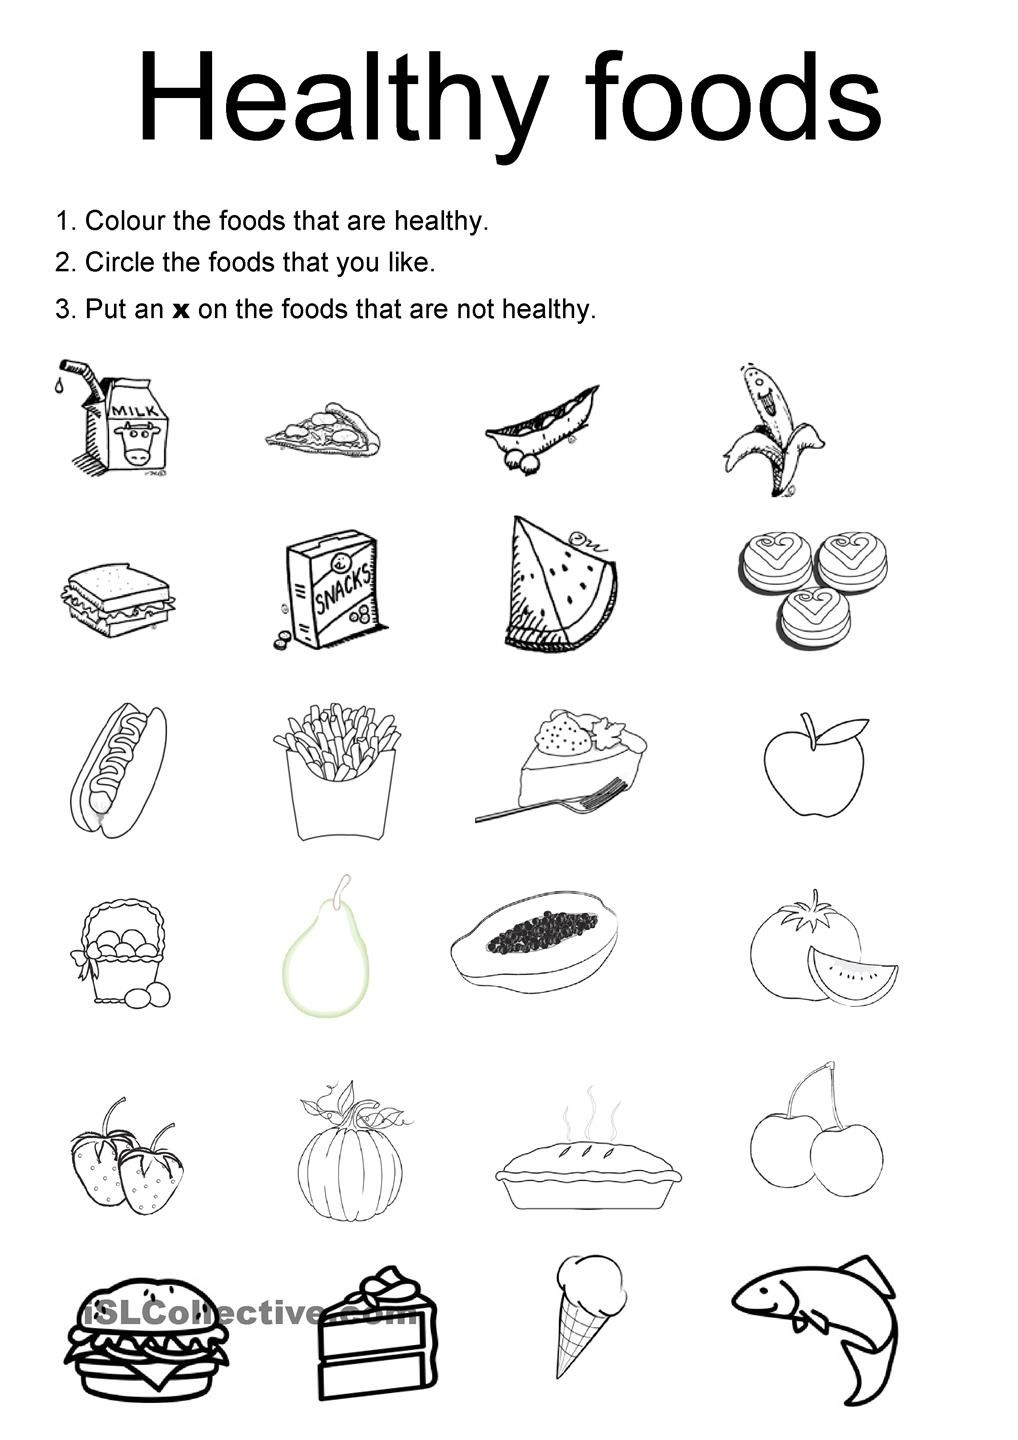 Worksheets Healthy Eating For Kids Worksheets healthy foods for kids worksheets good galleries family health galleries